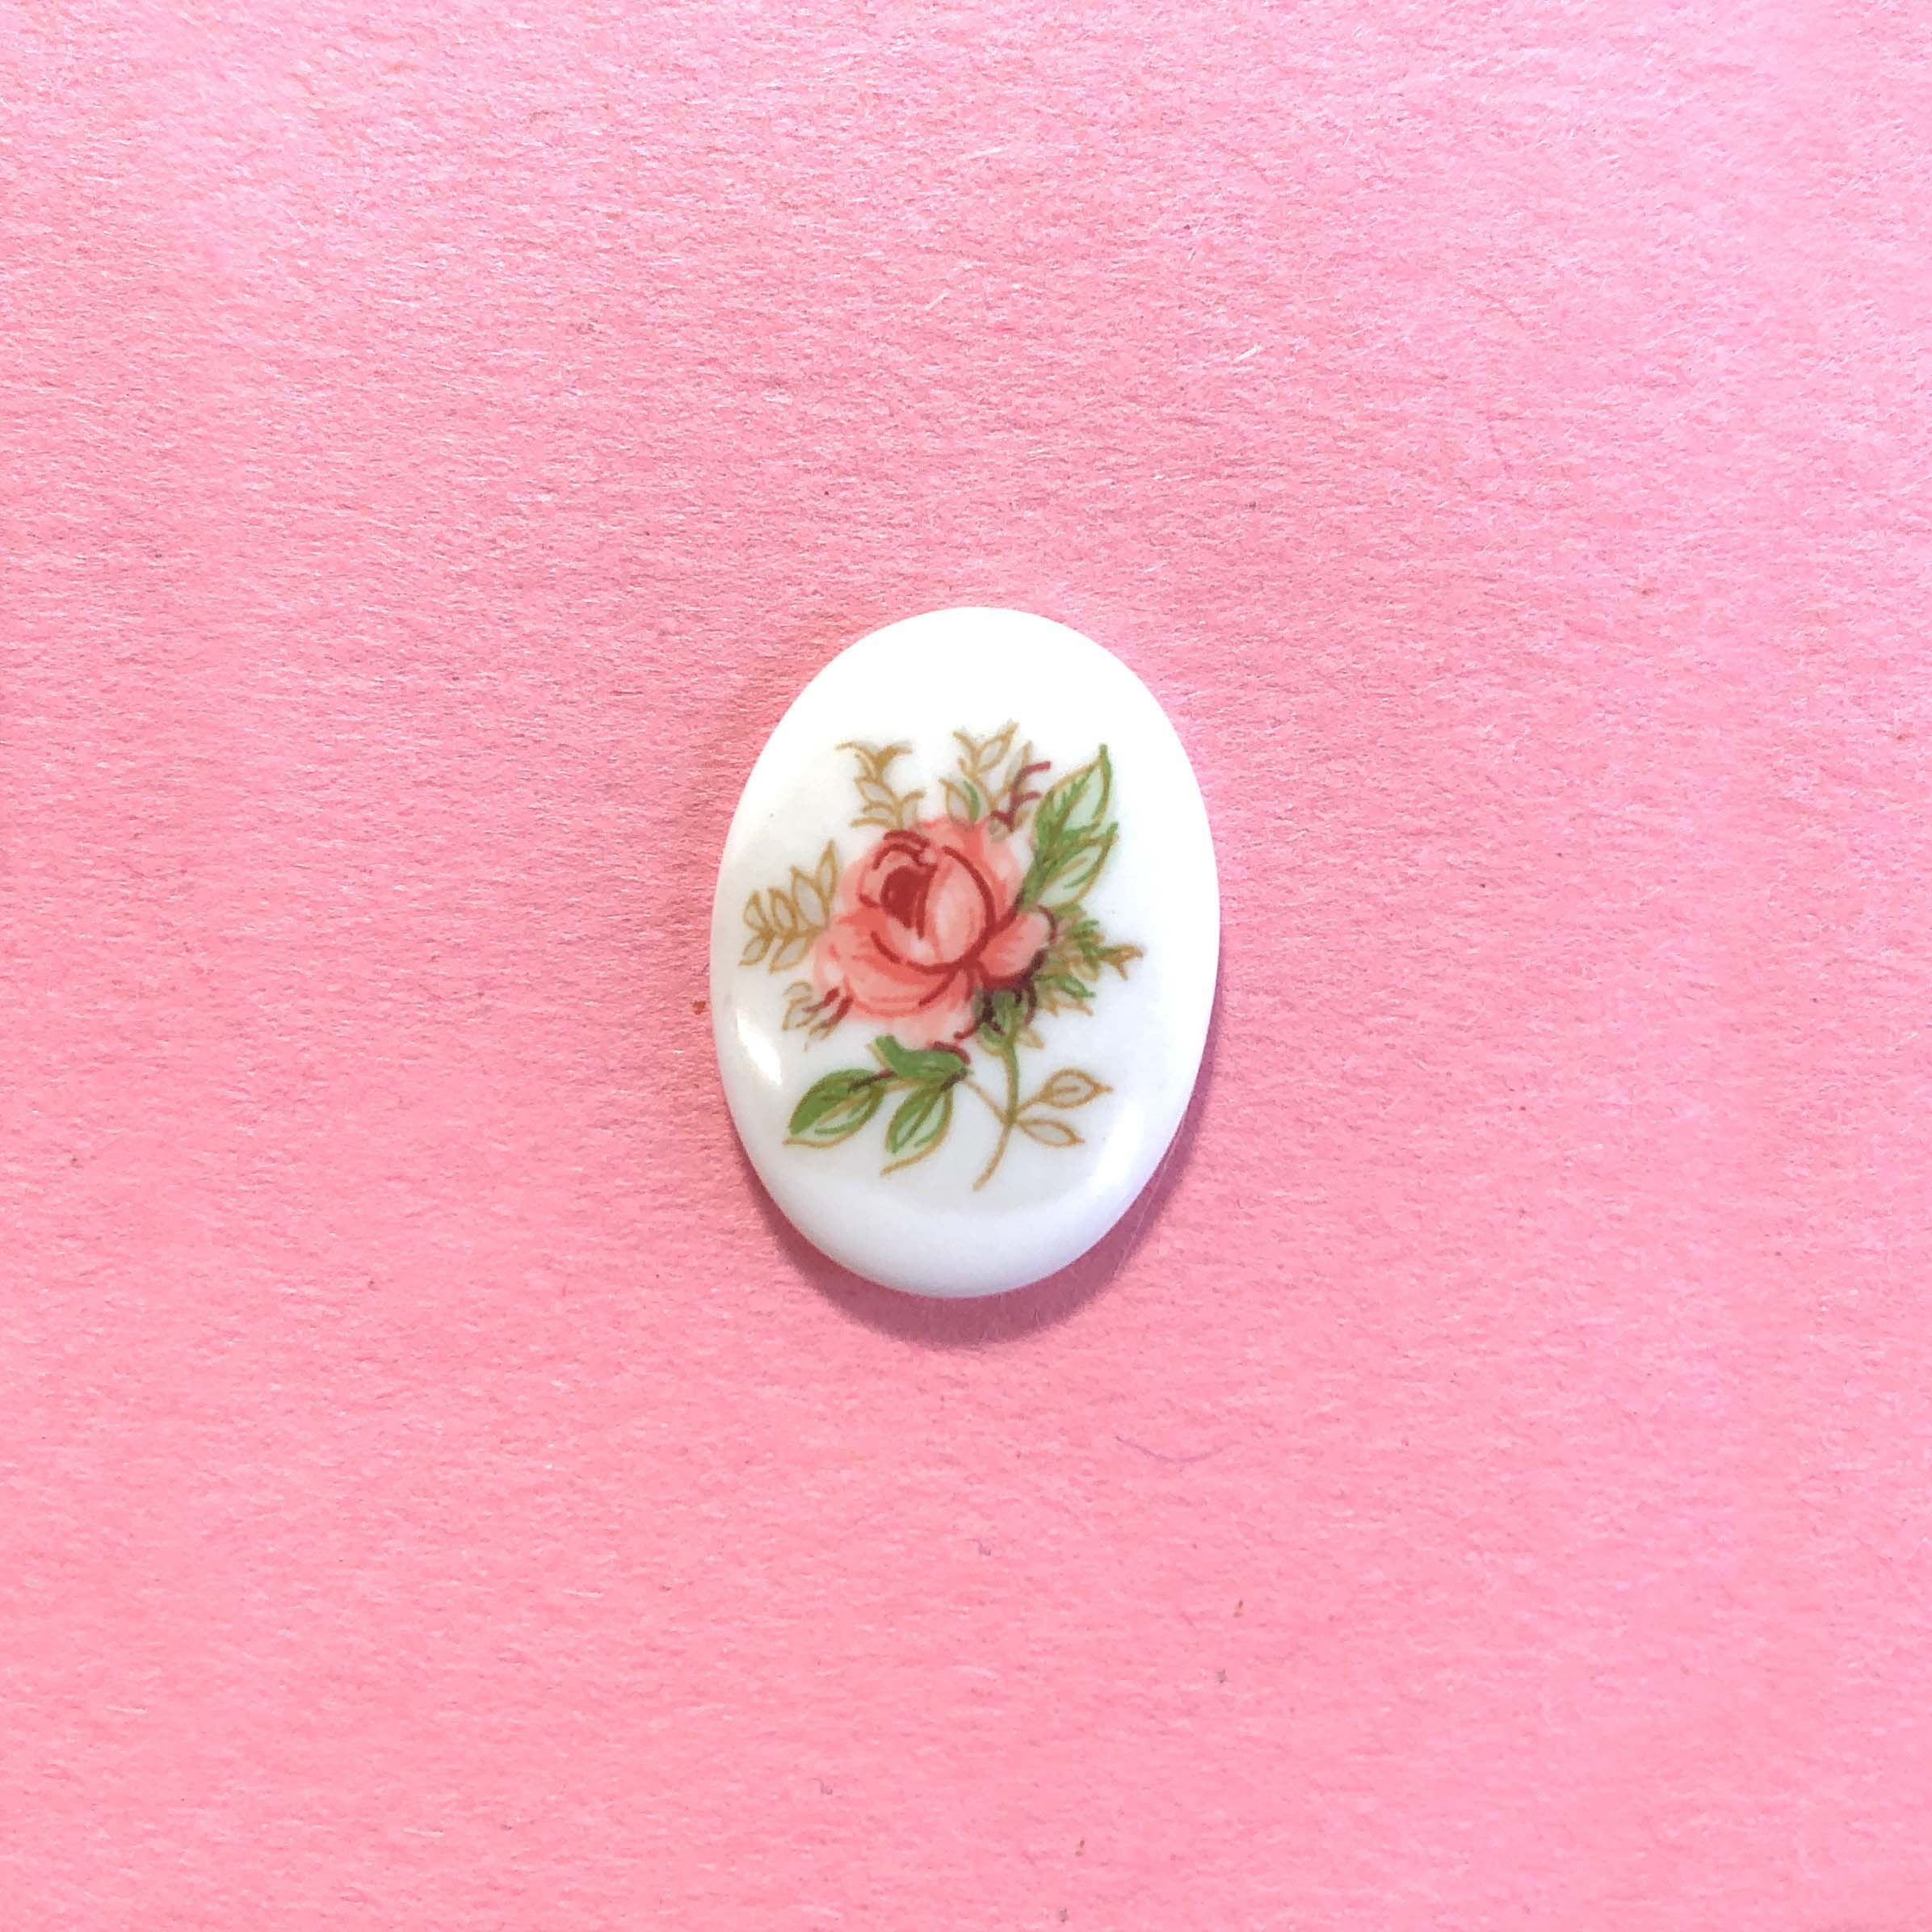 cameo, porcelain, rose cameo, pink, 18 x 13mm, 04306, floral cameo, rose flowers, vintage jewelry supplies, jewelry making supplies, porcelain cameos, pink flowers,